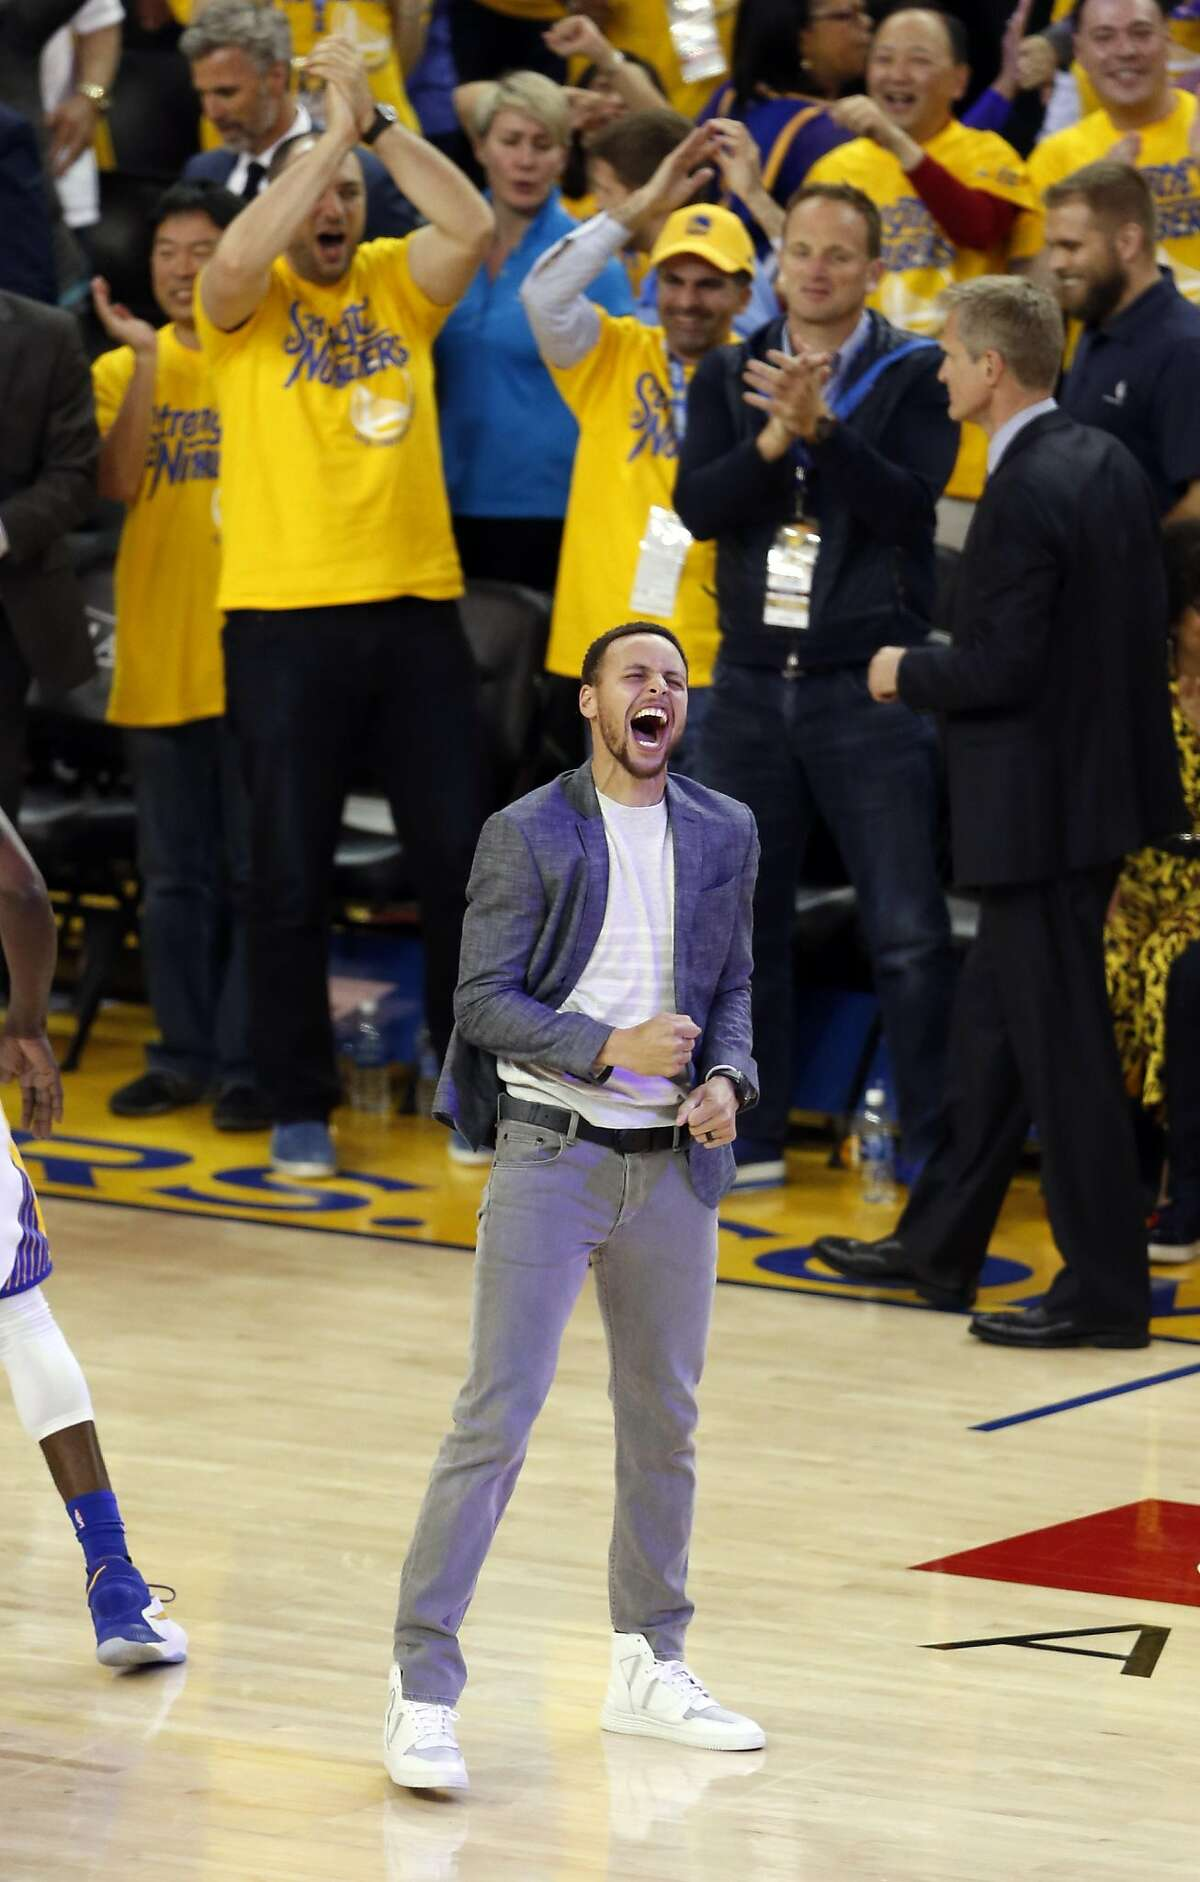 Golden State Warriors' Stephen Curry celebrates in 4th quarter against Portland Trail Blazers in Game 2 of NBA Playoffs' Western Conference Semifinals at Oracle Arena in Oakland, Calif.,, on Tuesday, May 3, 2016.